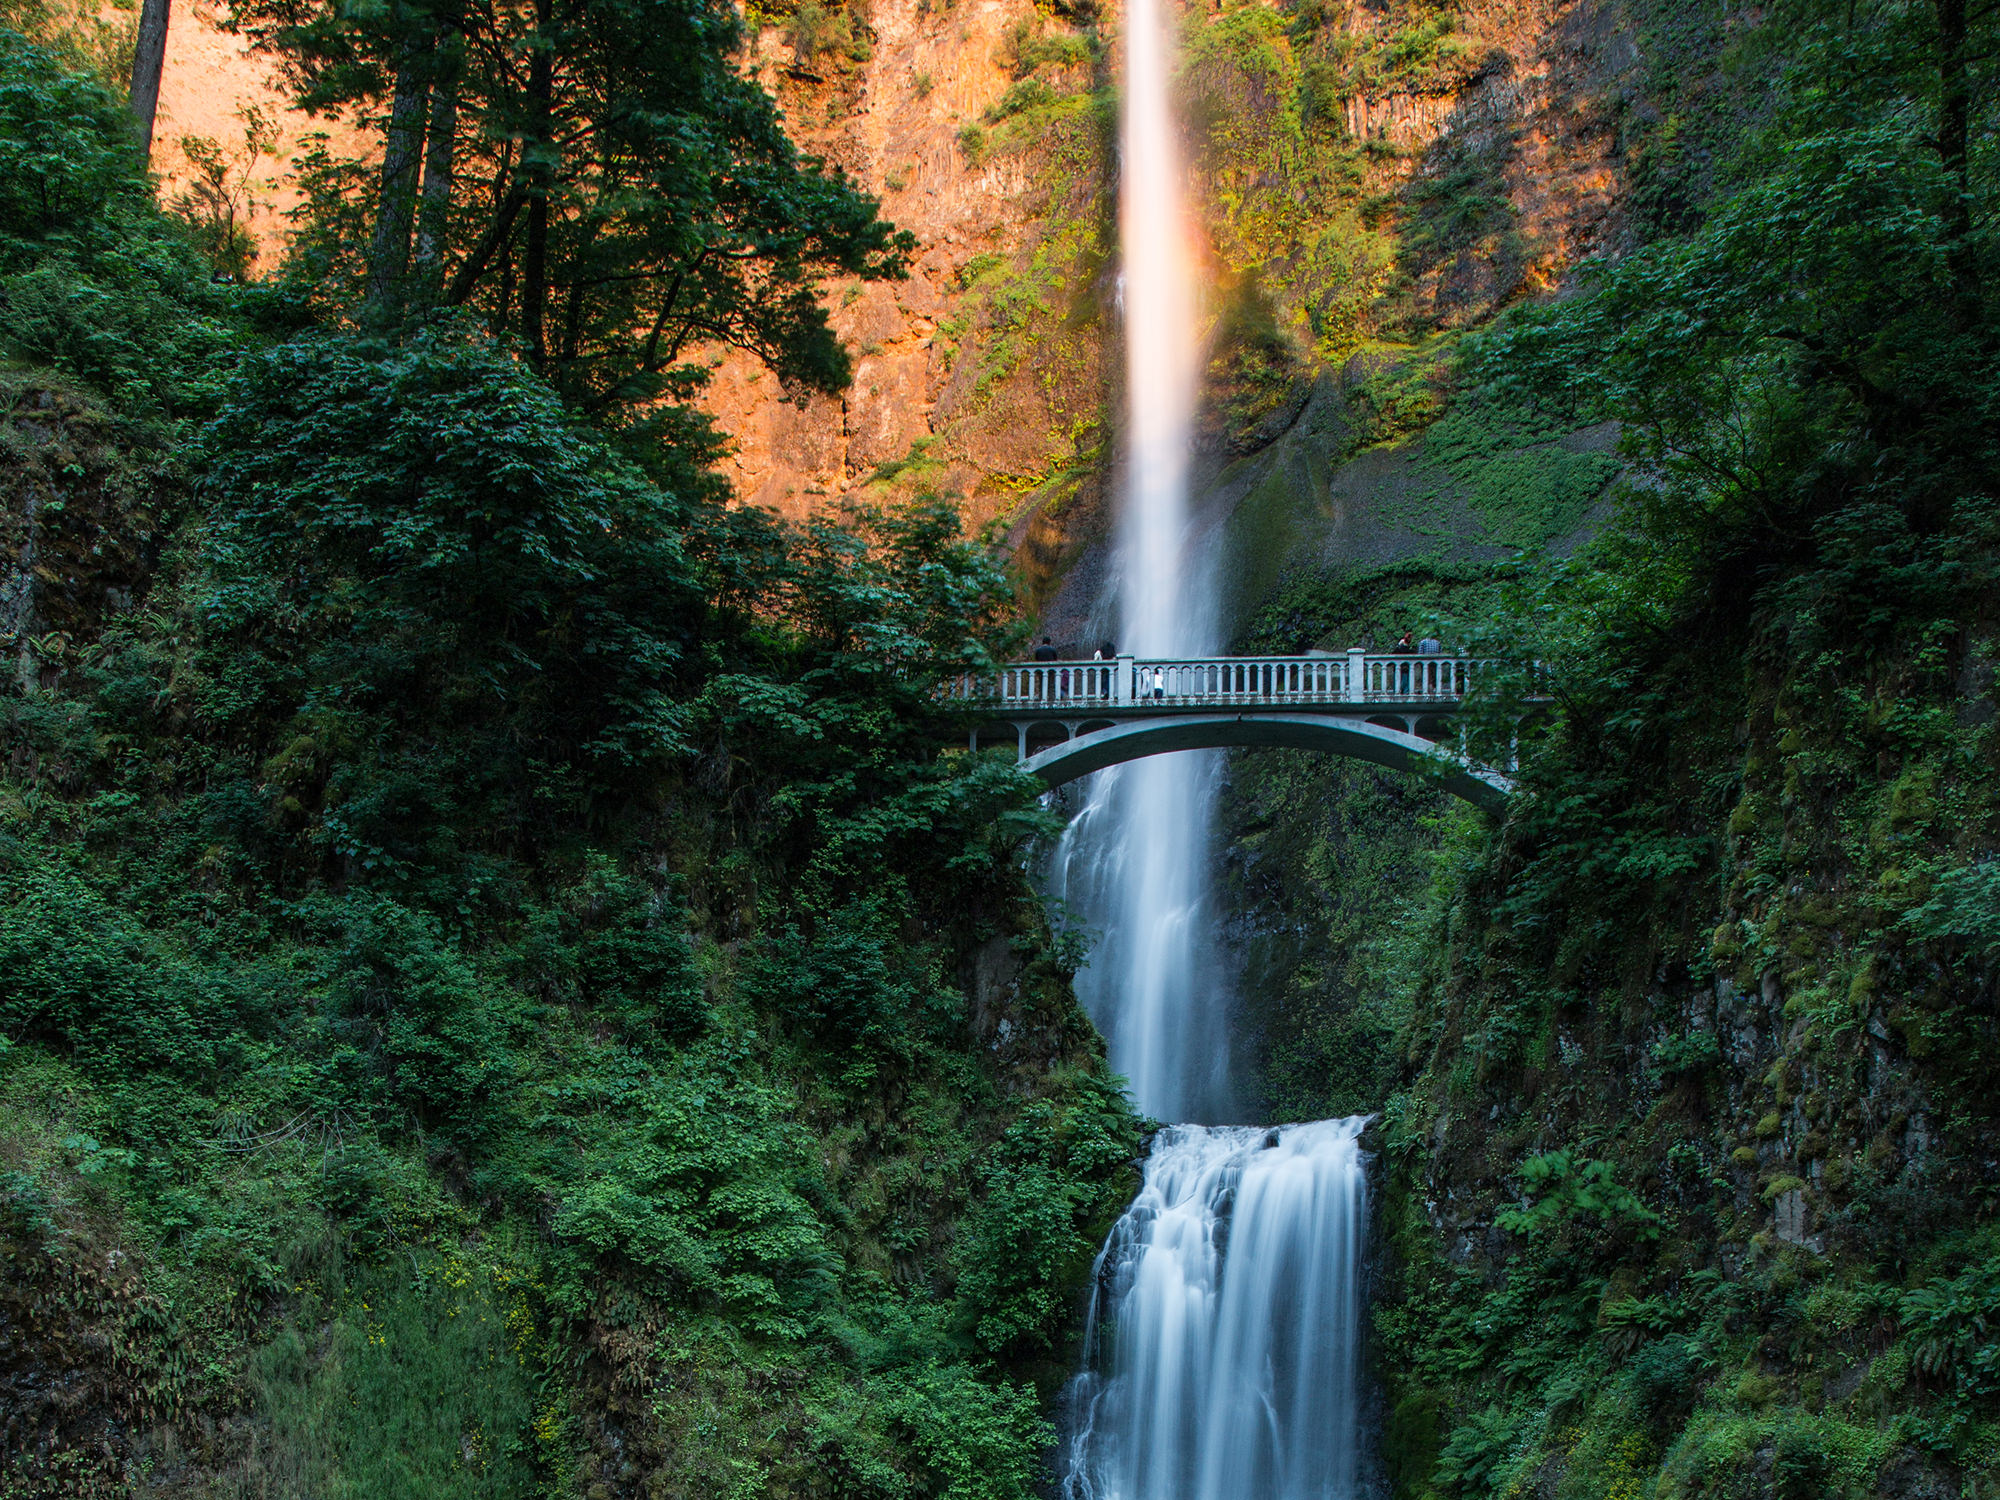 Multnomah Falls - Columbia Gorge, OR